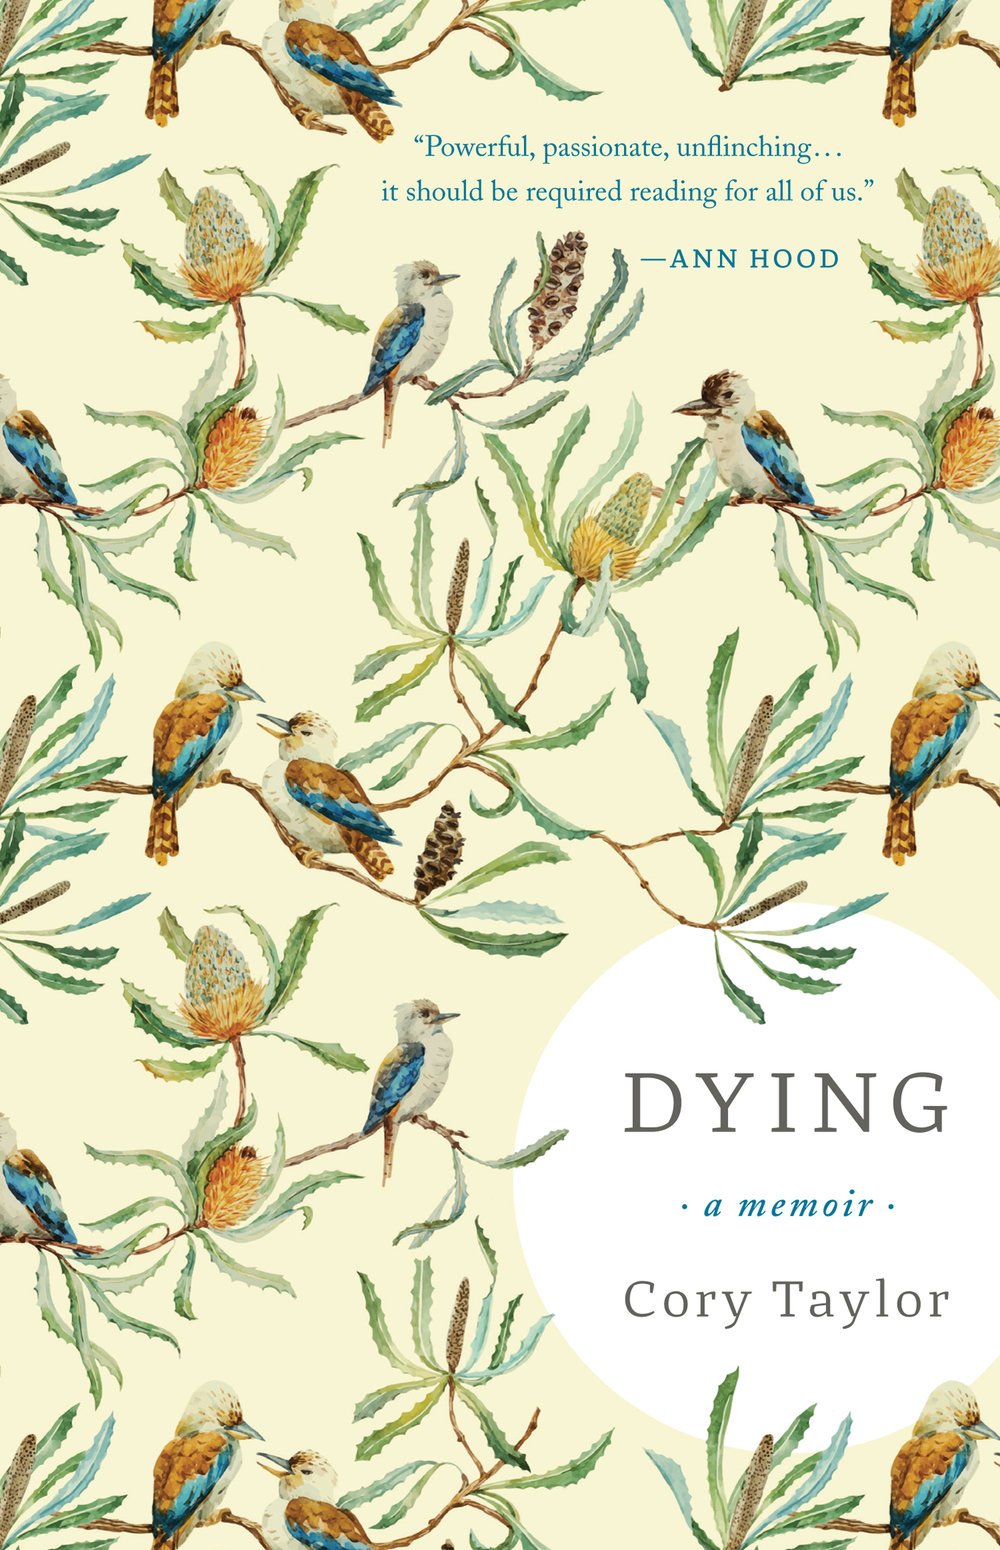 Dying: A Memoir, Cory Taylor. Tin House Books, August 2017. 152 pp.